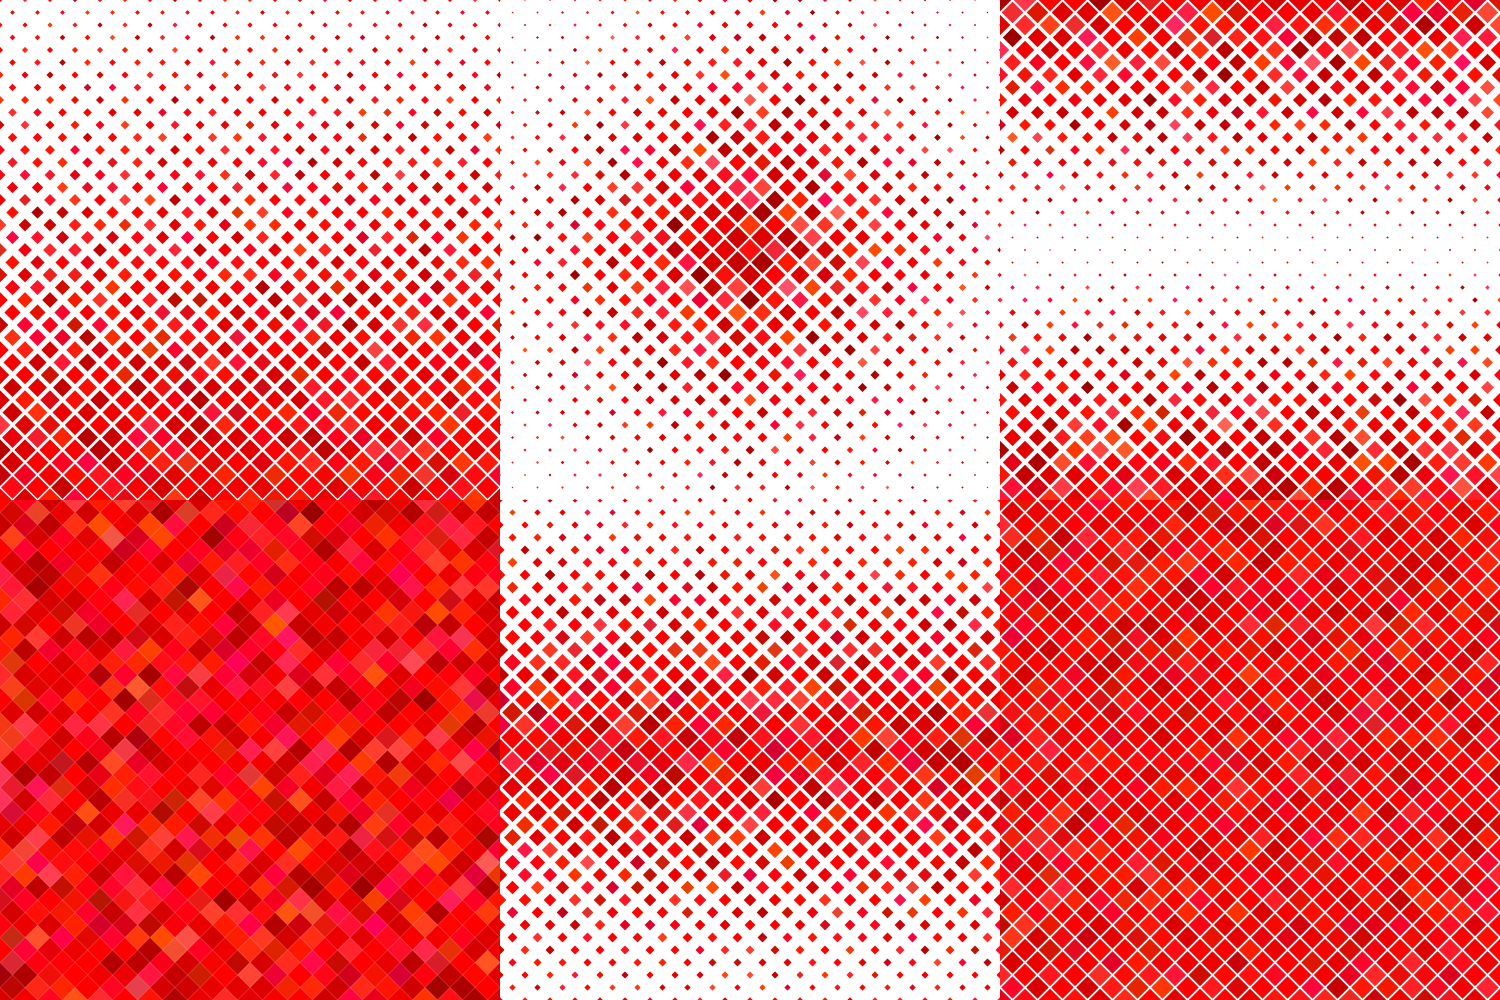 24 Red Square Patterns (AI, EPS, JPG 5000x5000) example image 3